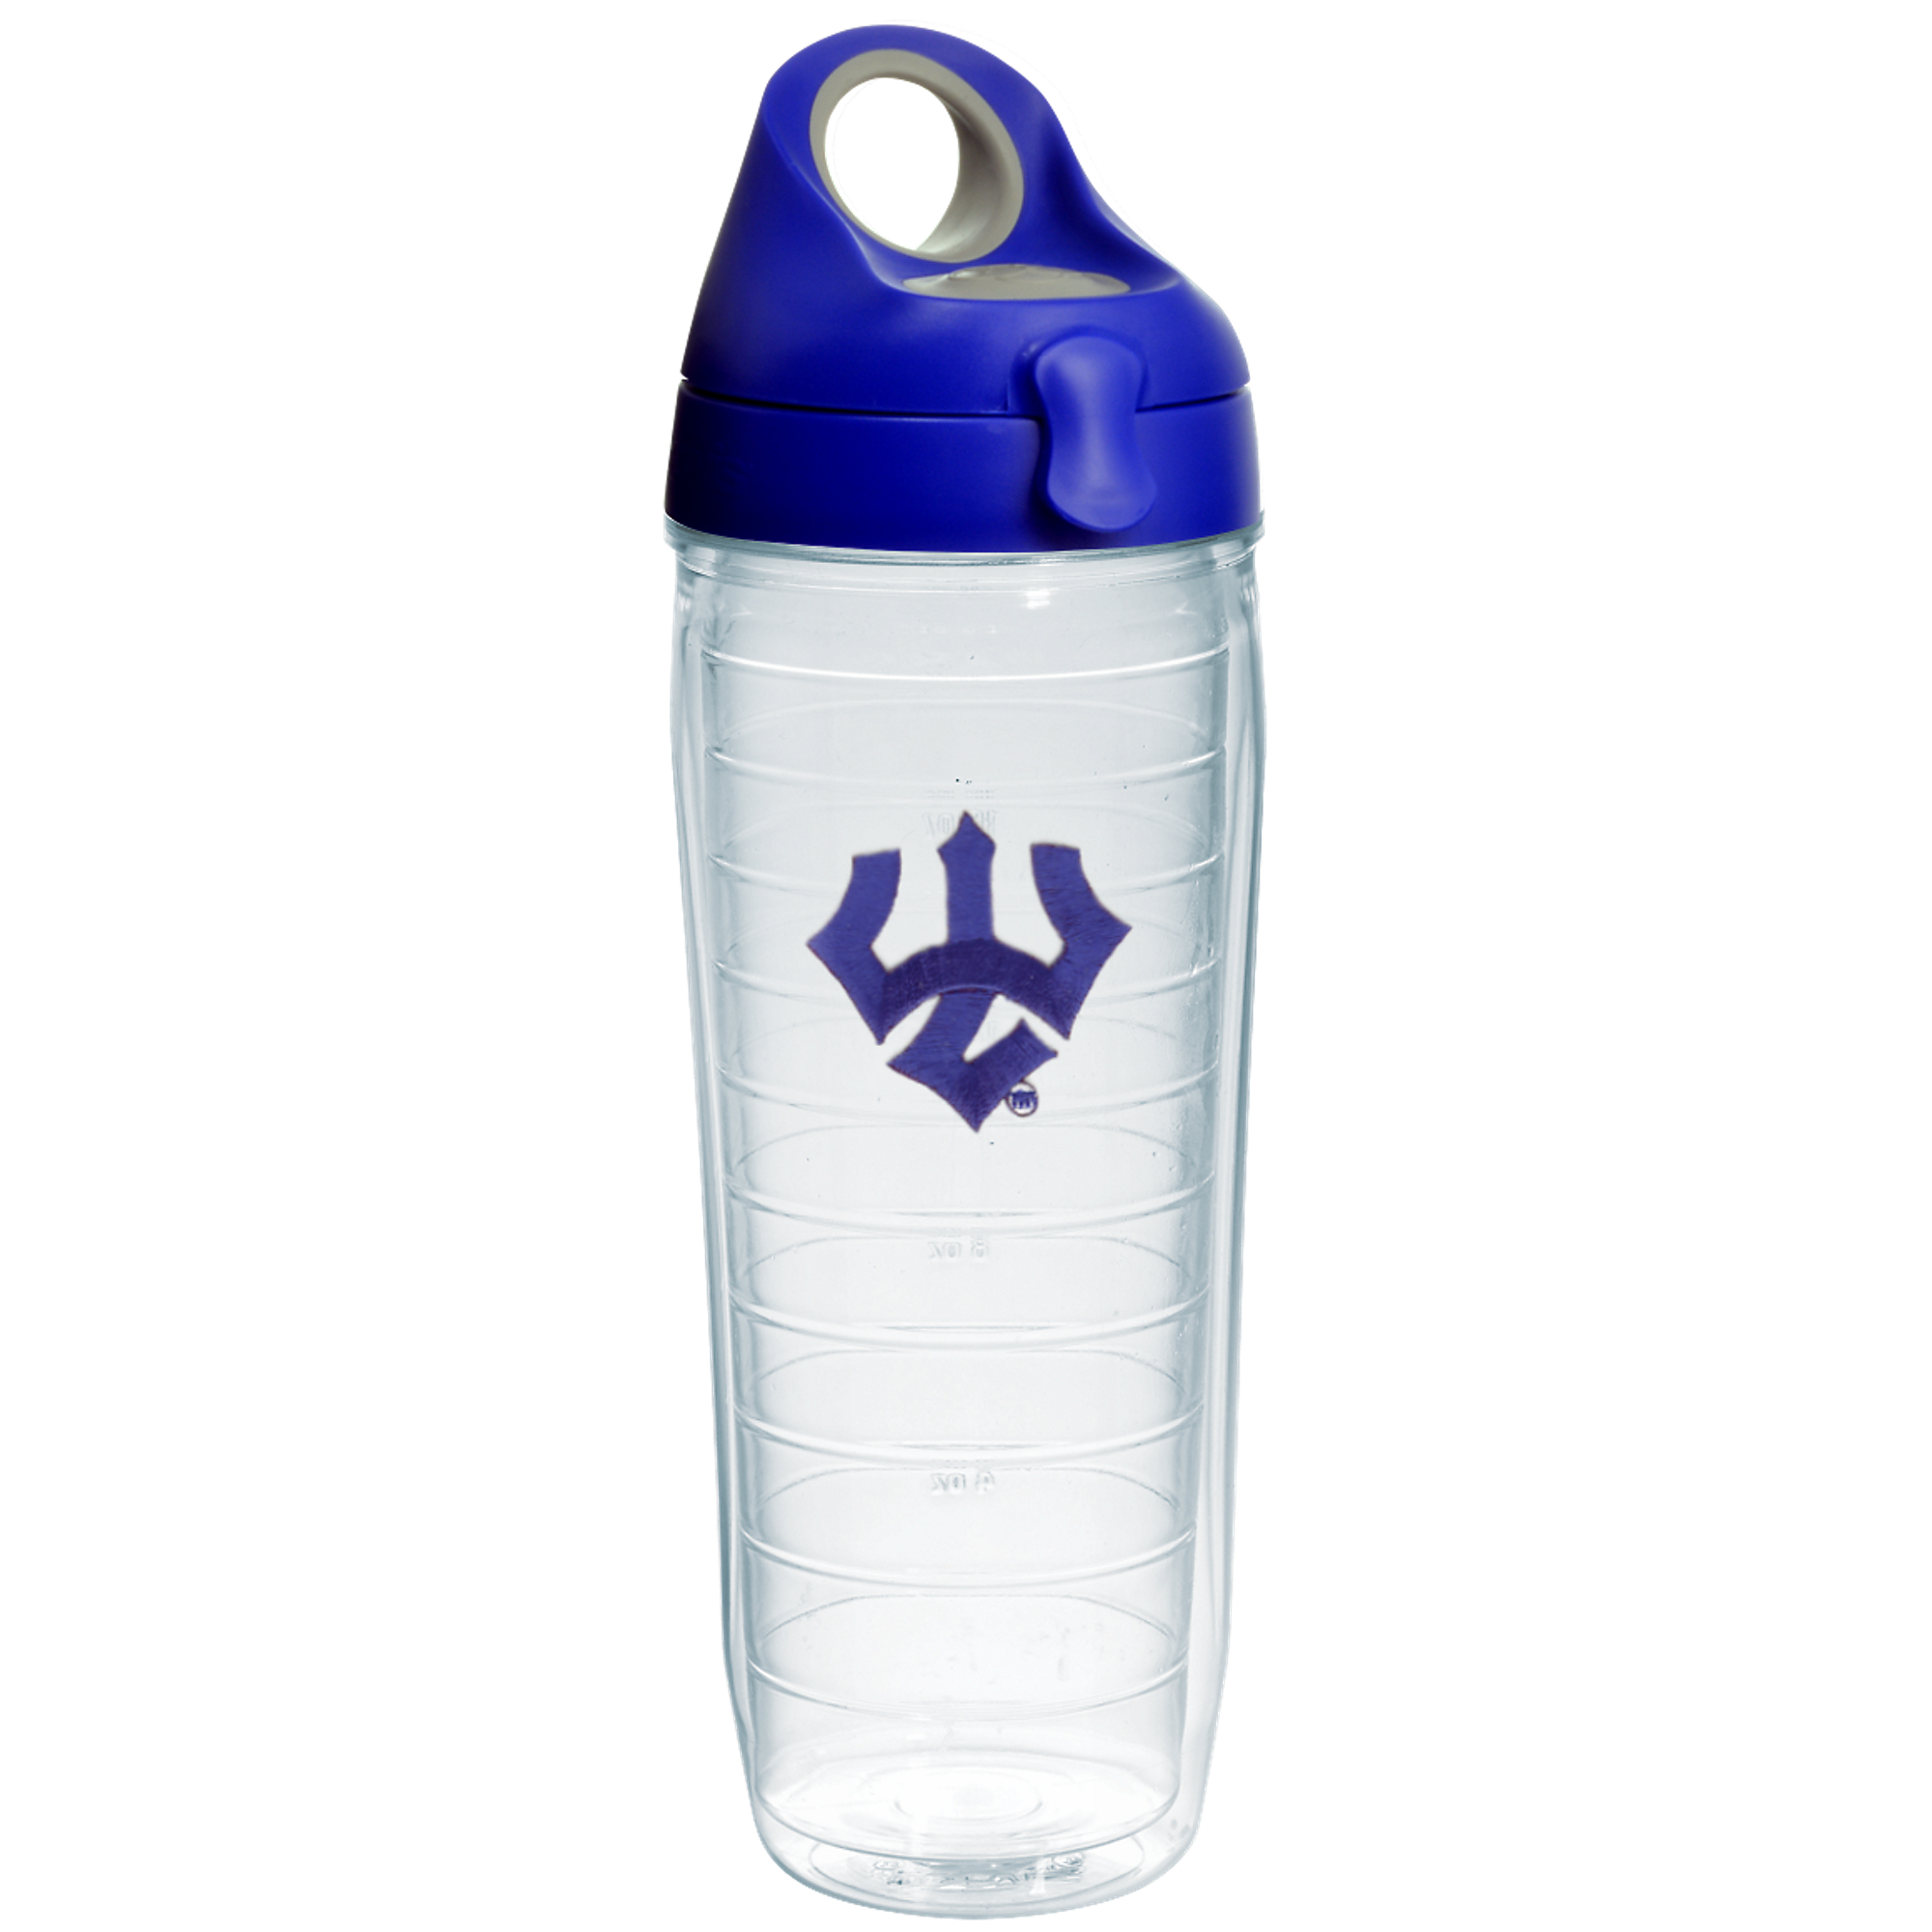 Cover Image For Tervis Water Bottle with Trident